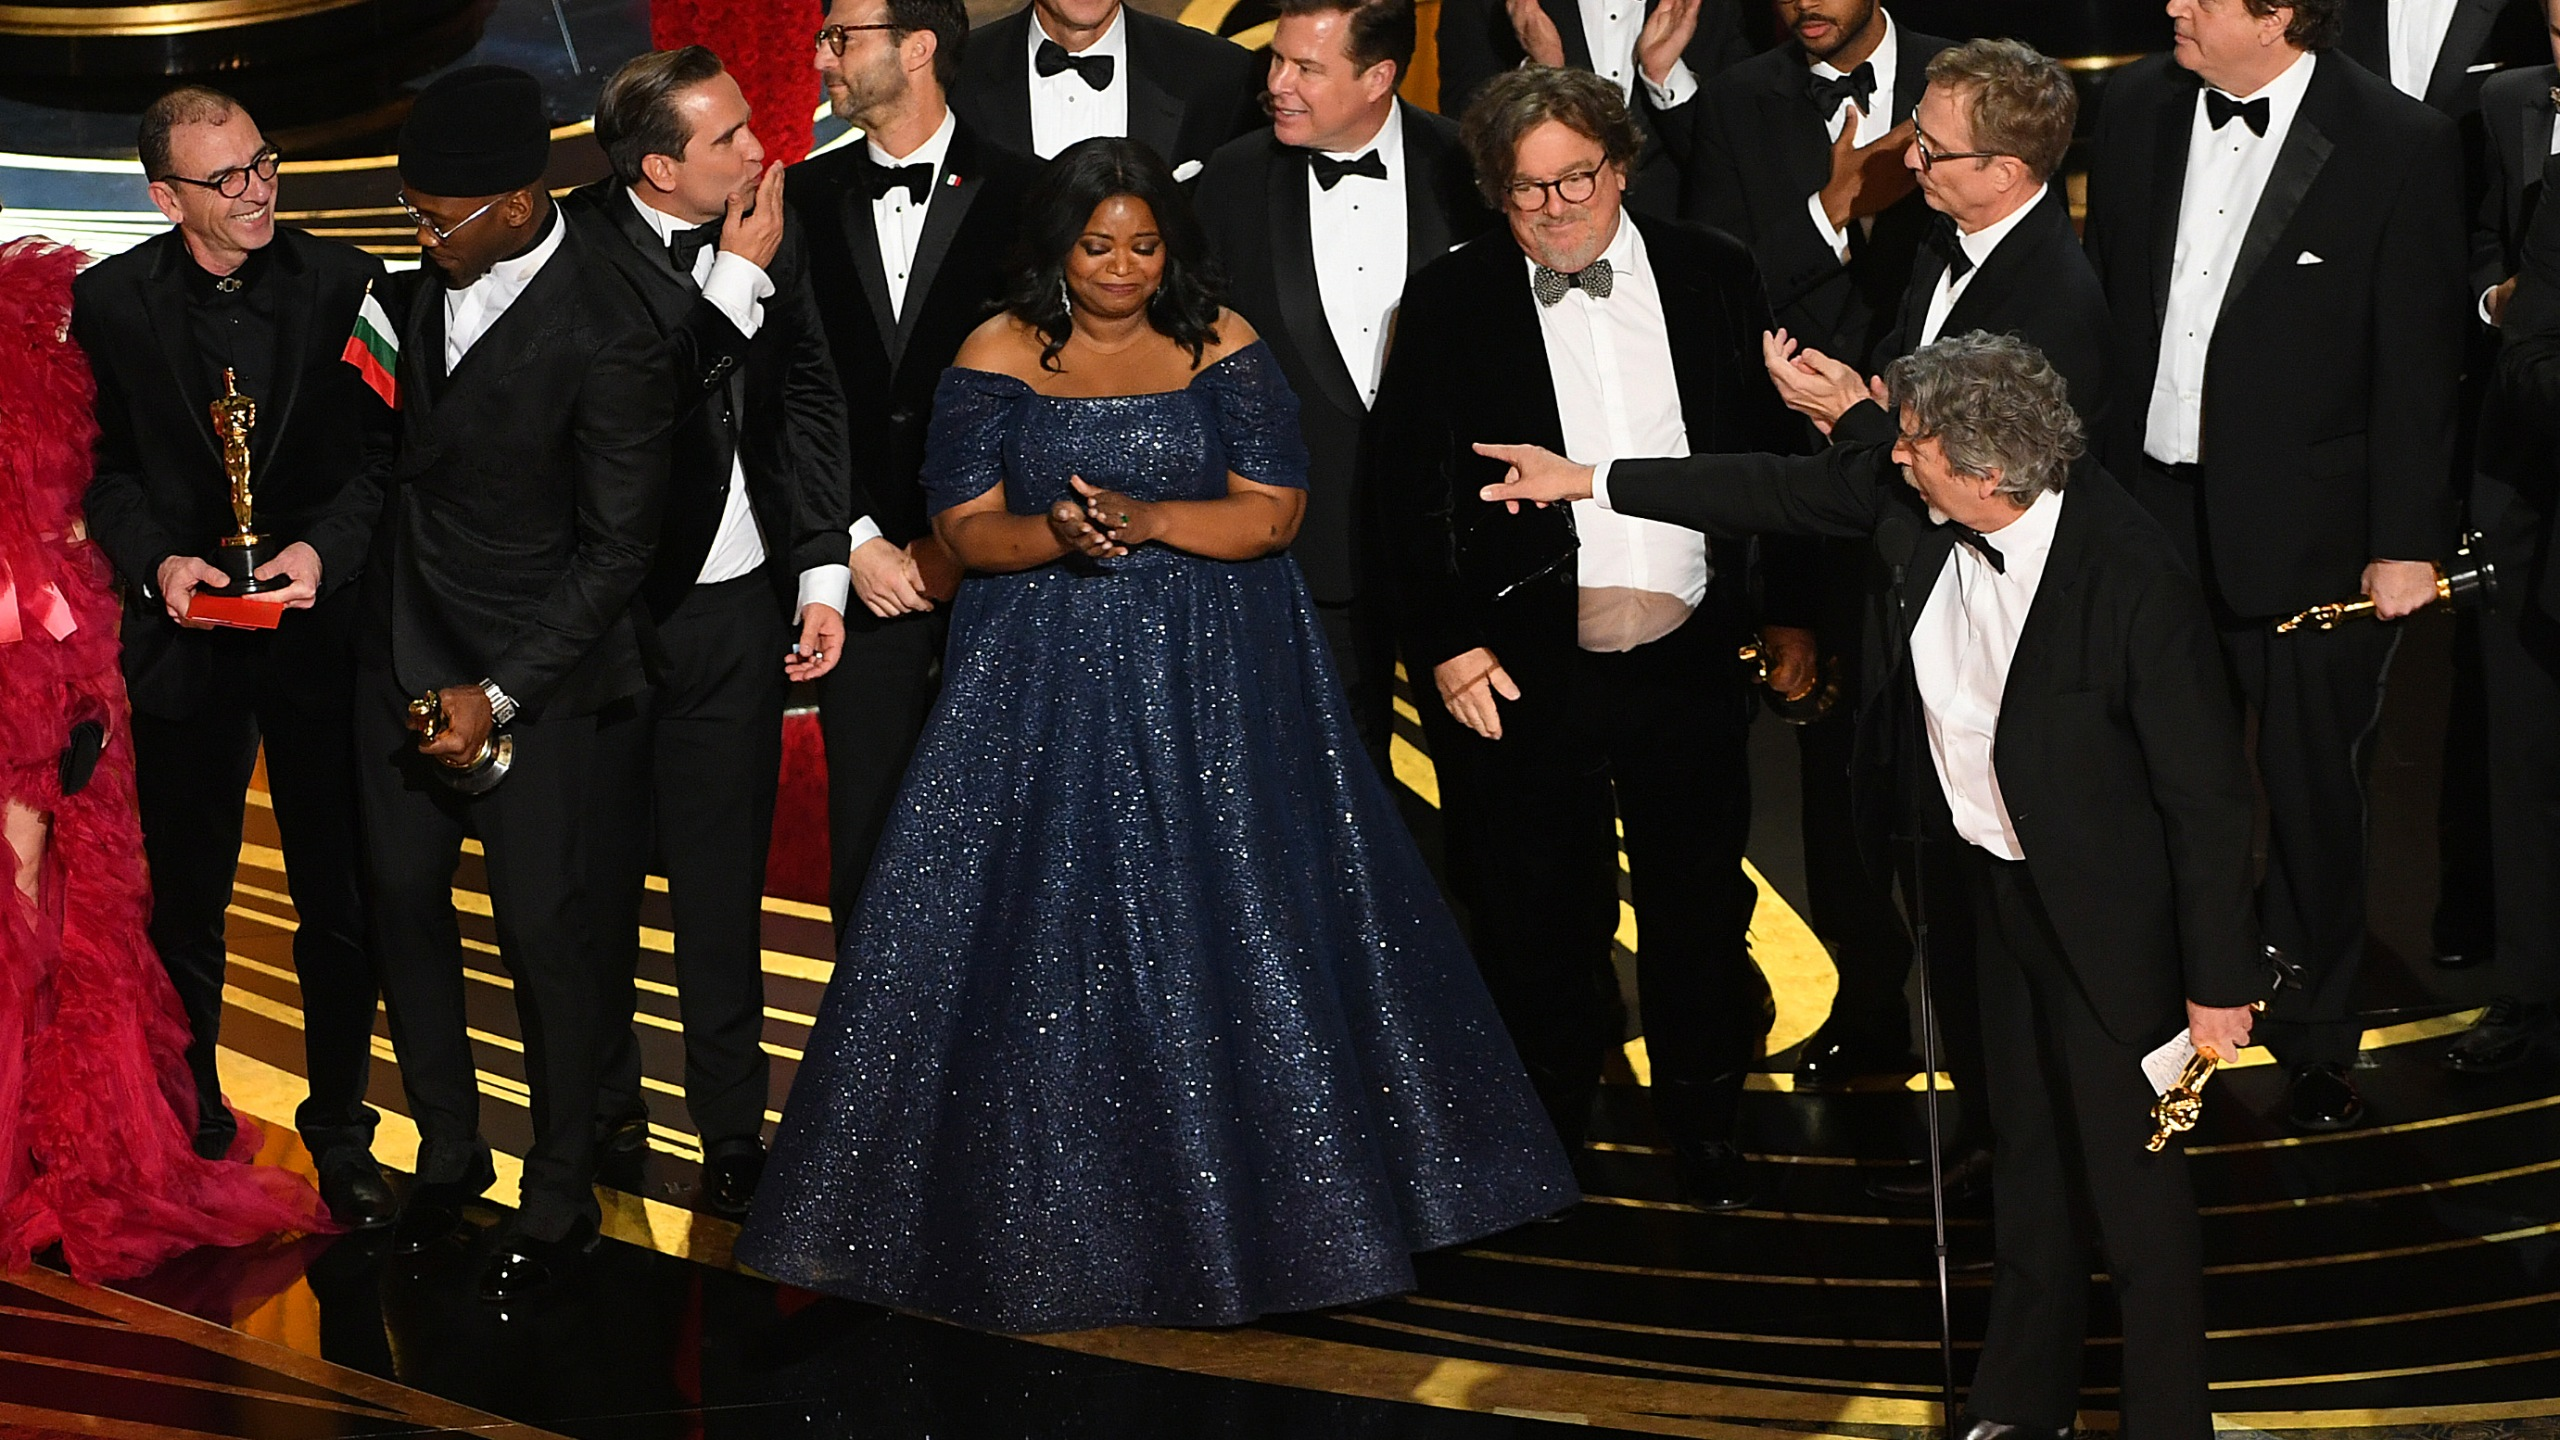 Cast and crew of 'Green Book,' including Linda Cardellini Mahershala Ali, Octavia Spencer, Brian Currie, Charles B. Wessler, Jim Burke, Peter Farrelly, and Nick Vallelonga accept the Best Picture award during the 91st Annual Academy Awards at Dolby Theatre on February 24, 2019 in Hollywood, California. (Credit: Kevin Winter/Getty Images)